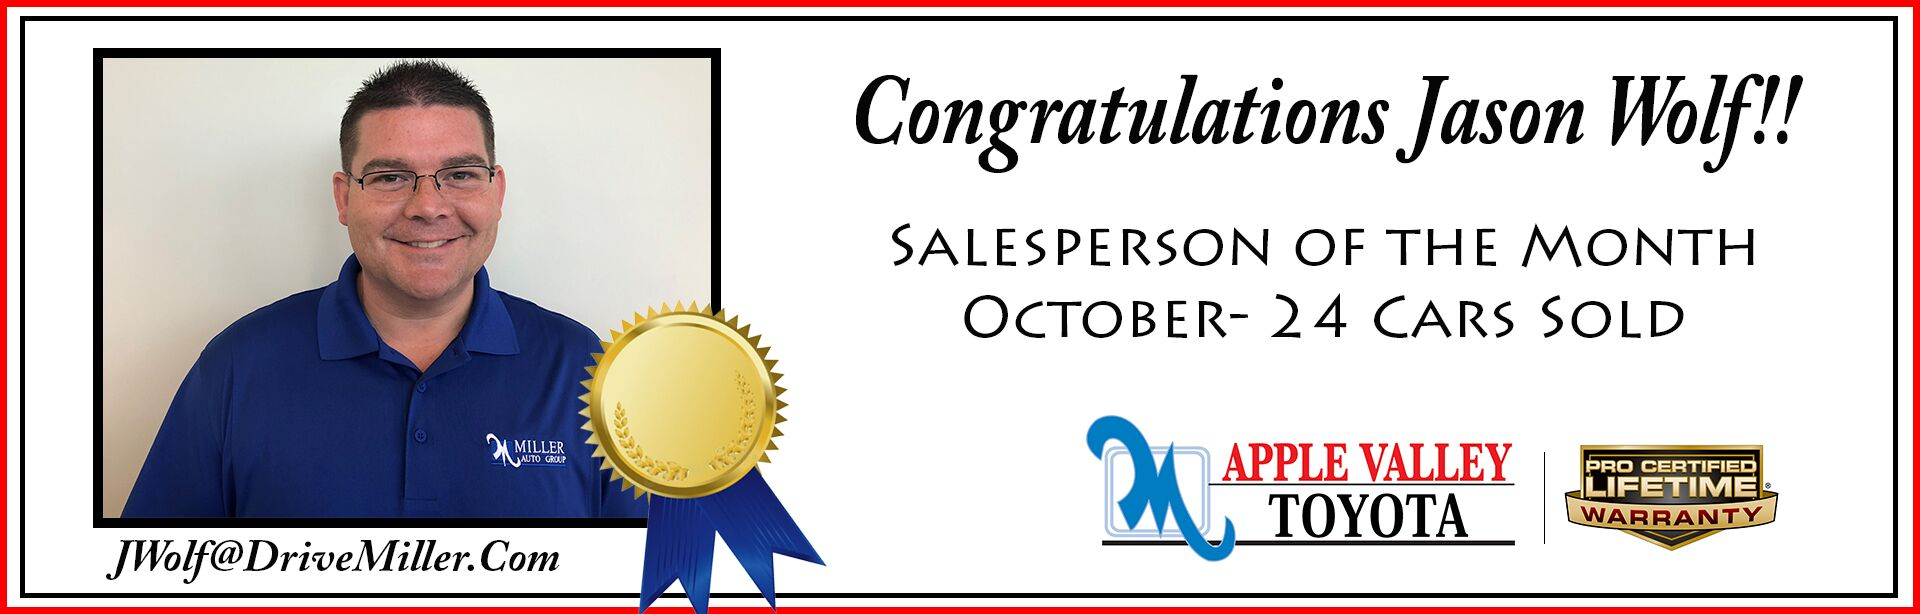 Salesperson of the Month